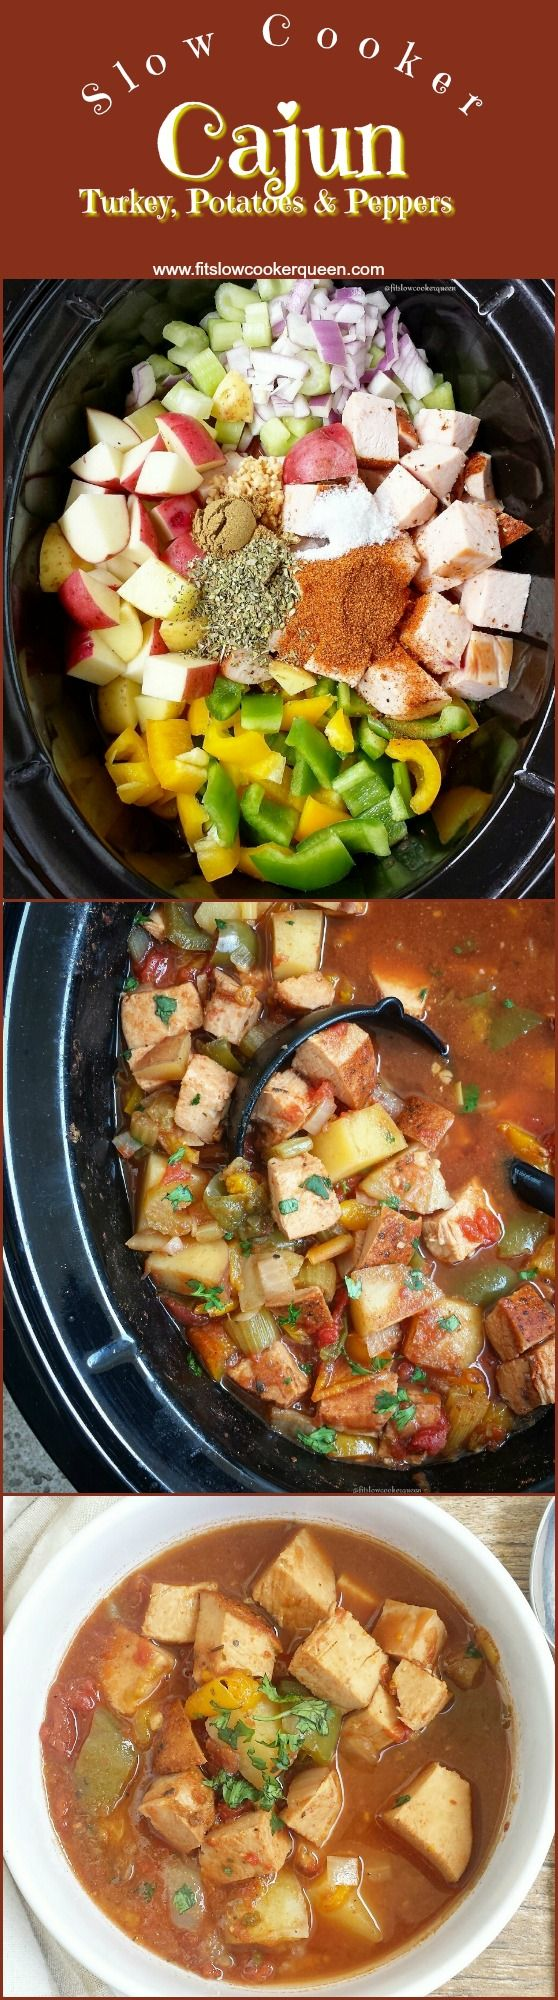 Cajun turkey breast along with peppers, potatoes, and simple seasonings are all you need for this healthy one-pot slow cooker recipe. Jennie-O switchcircle